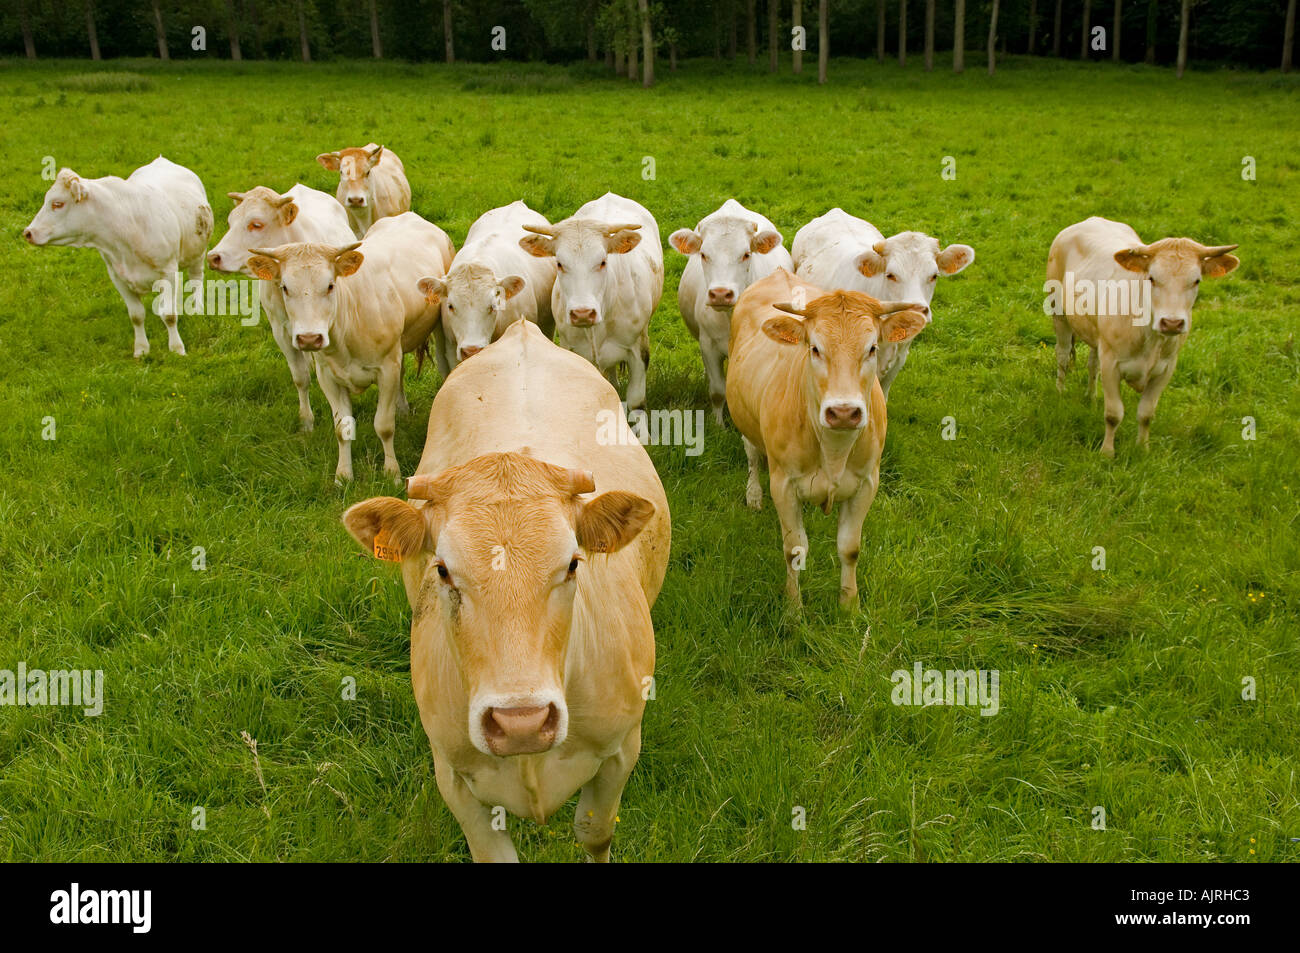 France Picardy cows in a field Stock Photo